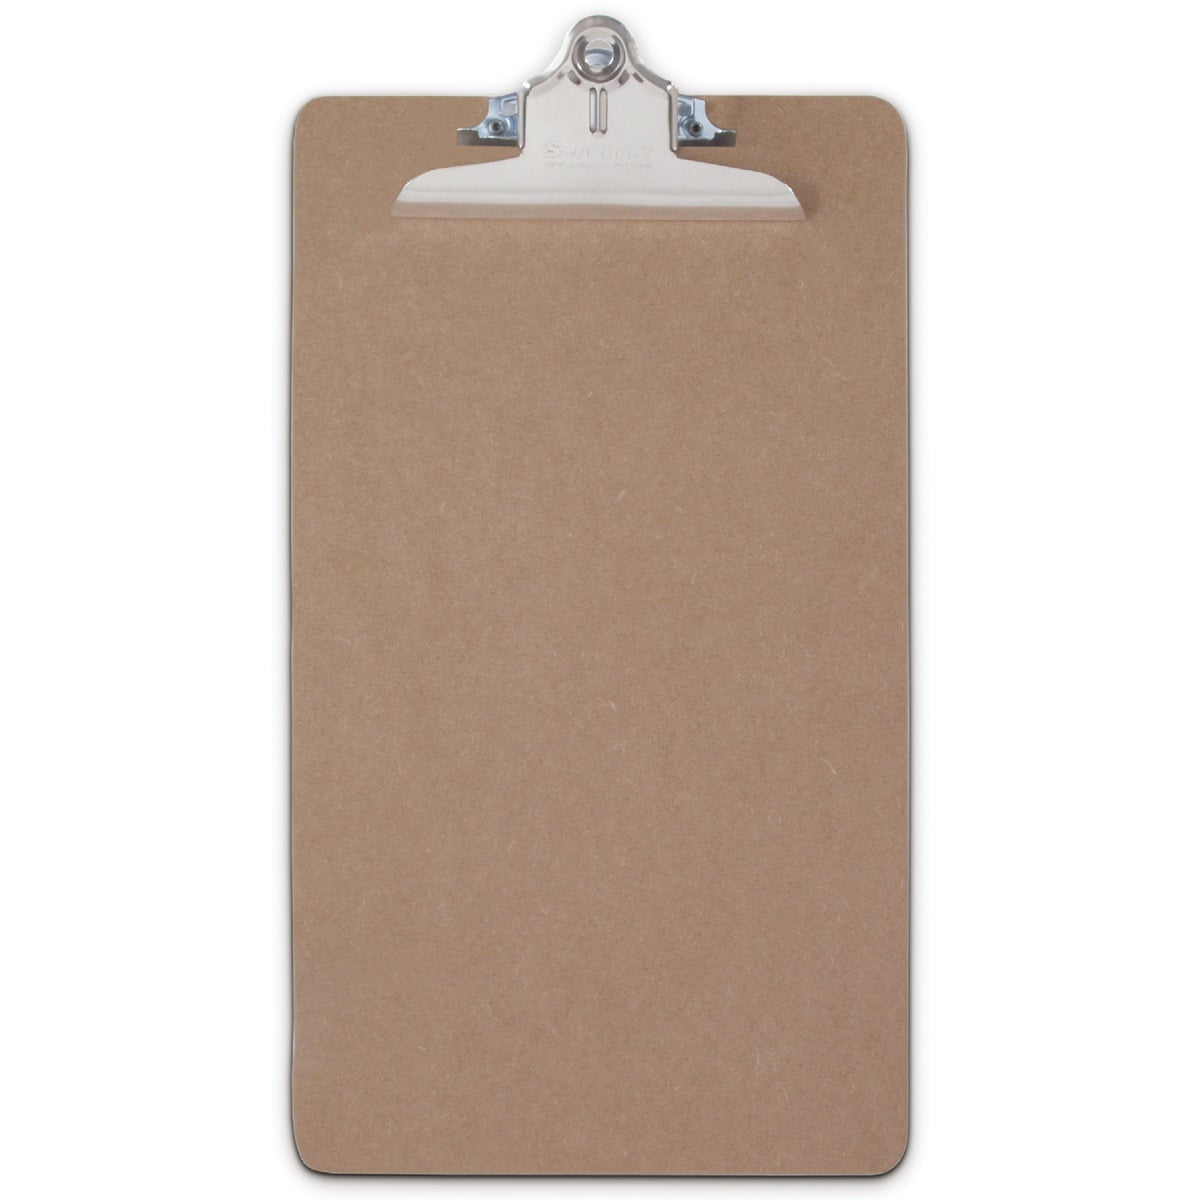 LEGAL CLIPBOARD - 05613 by Saunders Mfg Co Inc